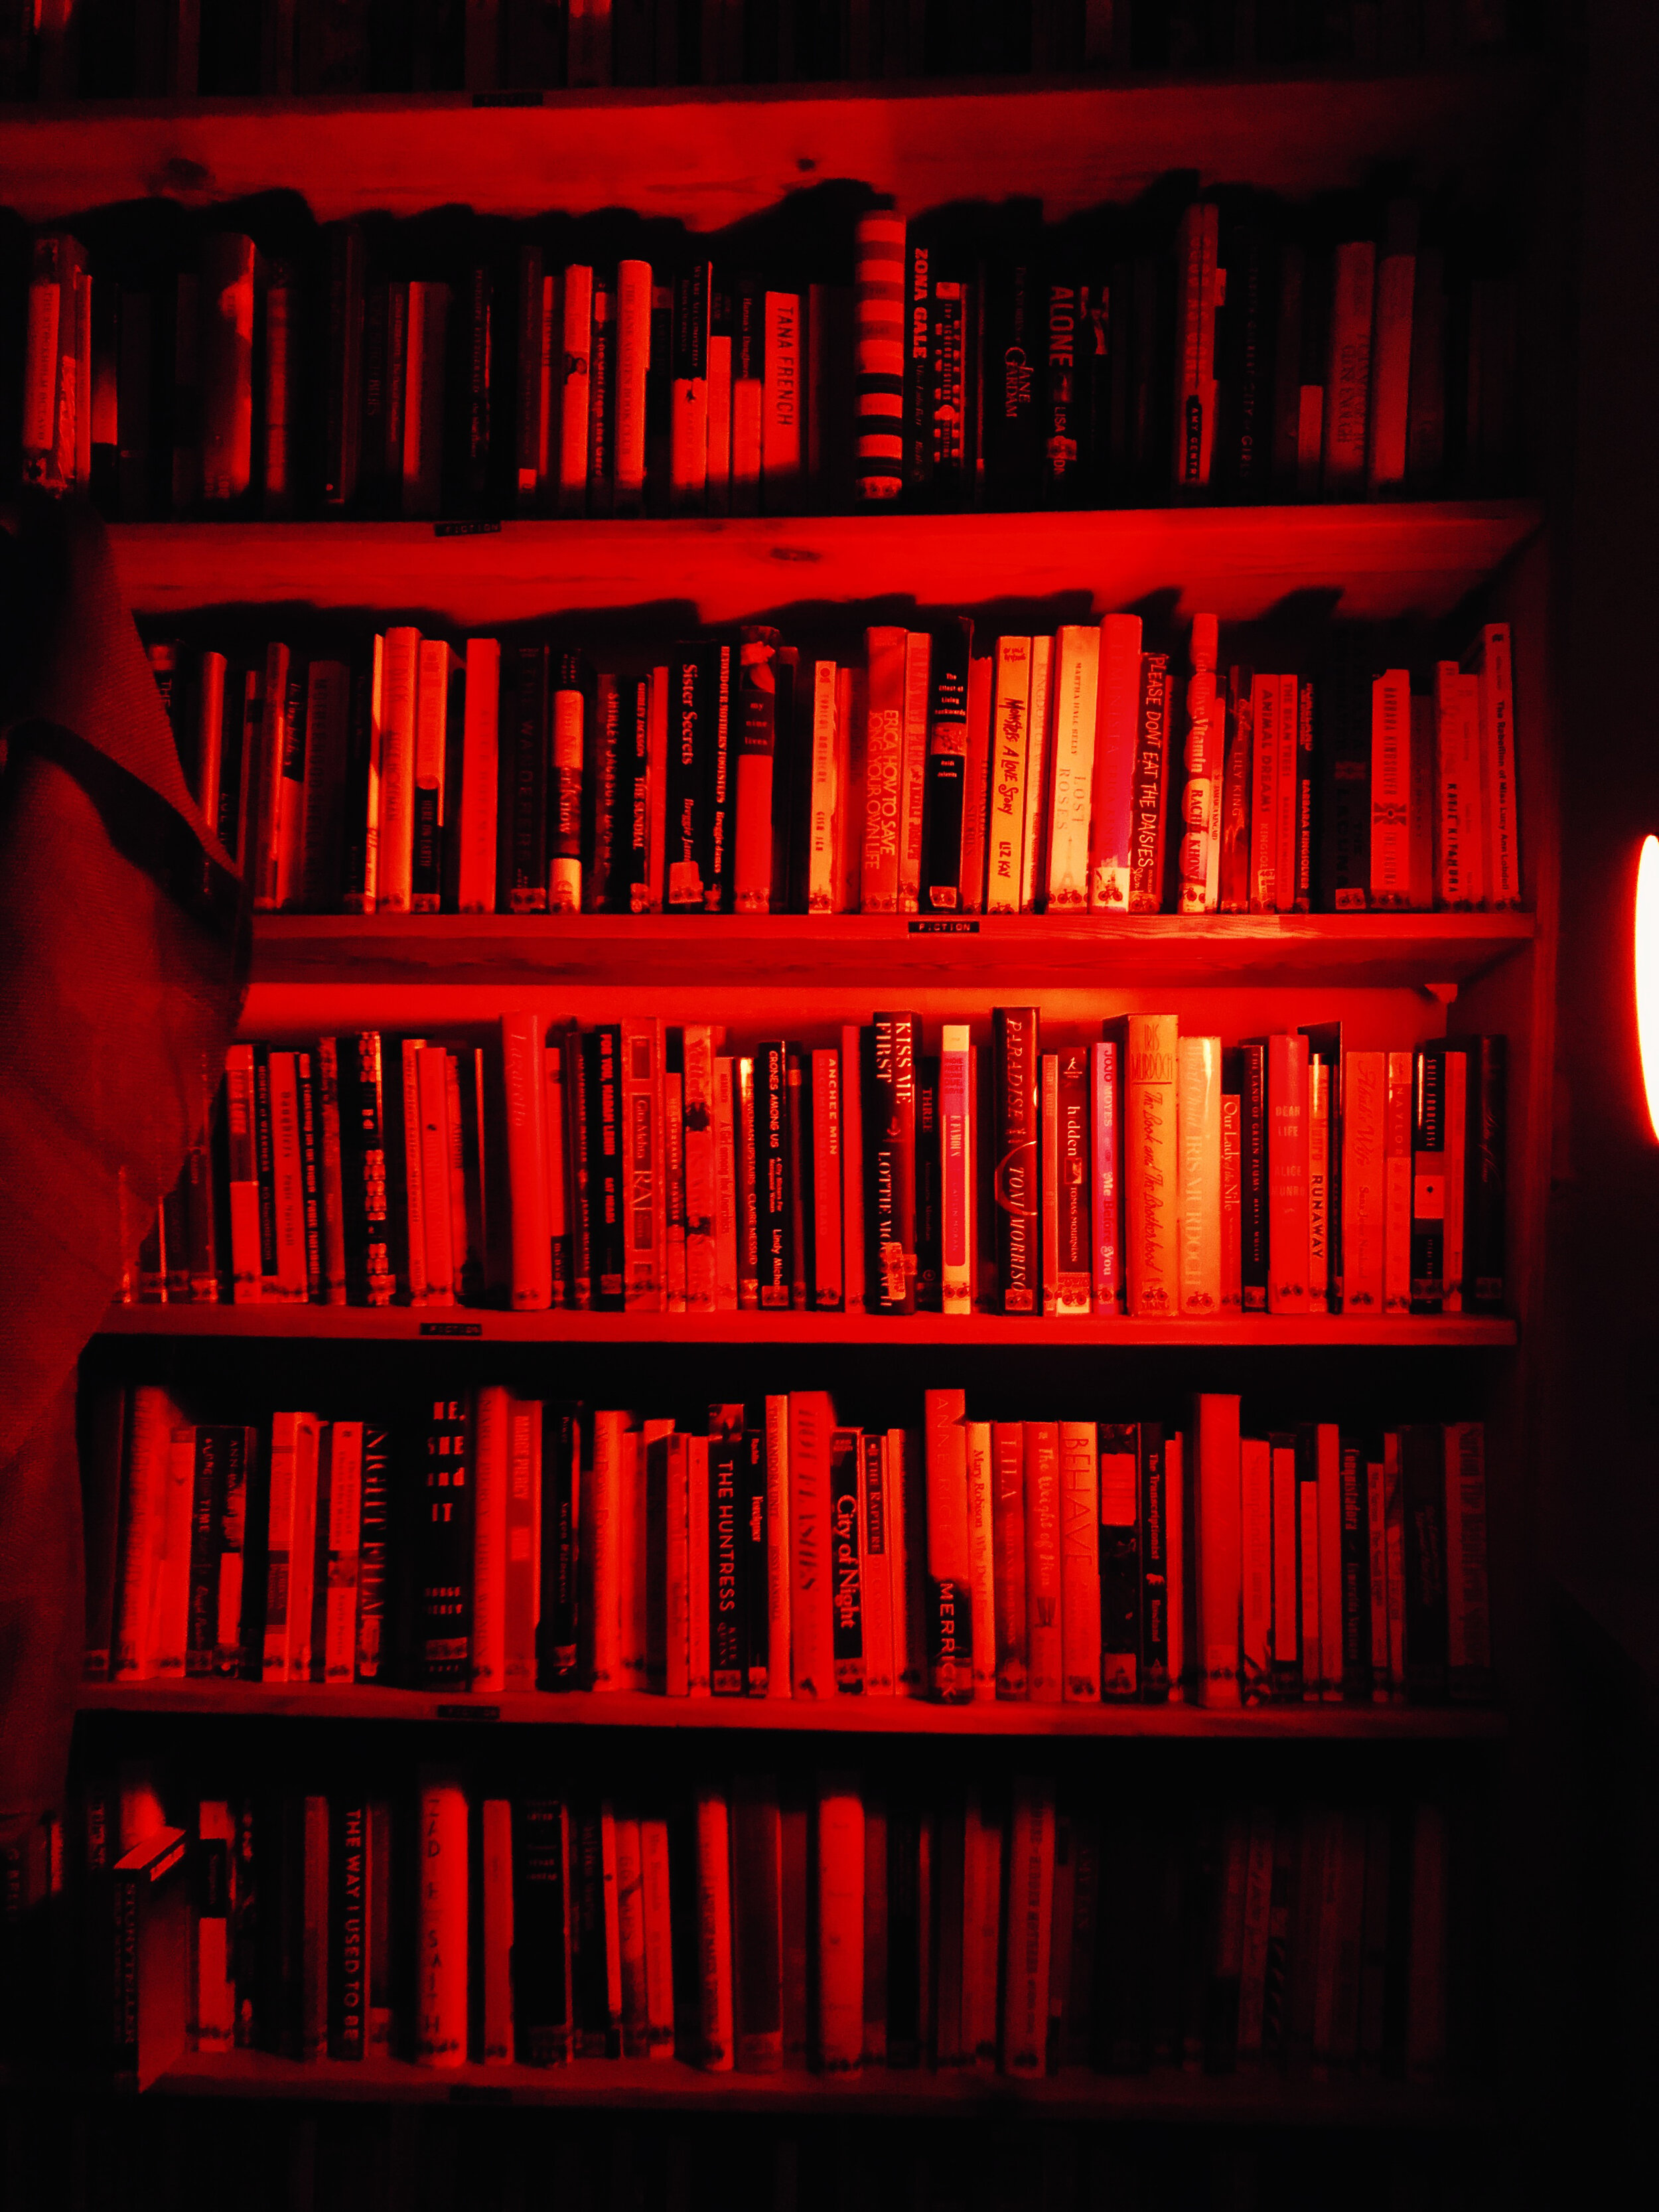 The Red Room brings a new light to queer feminist texts.